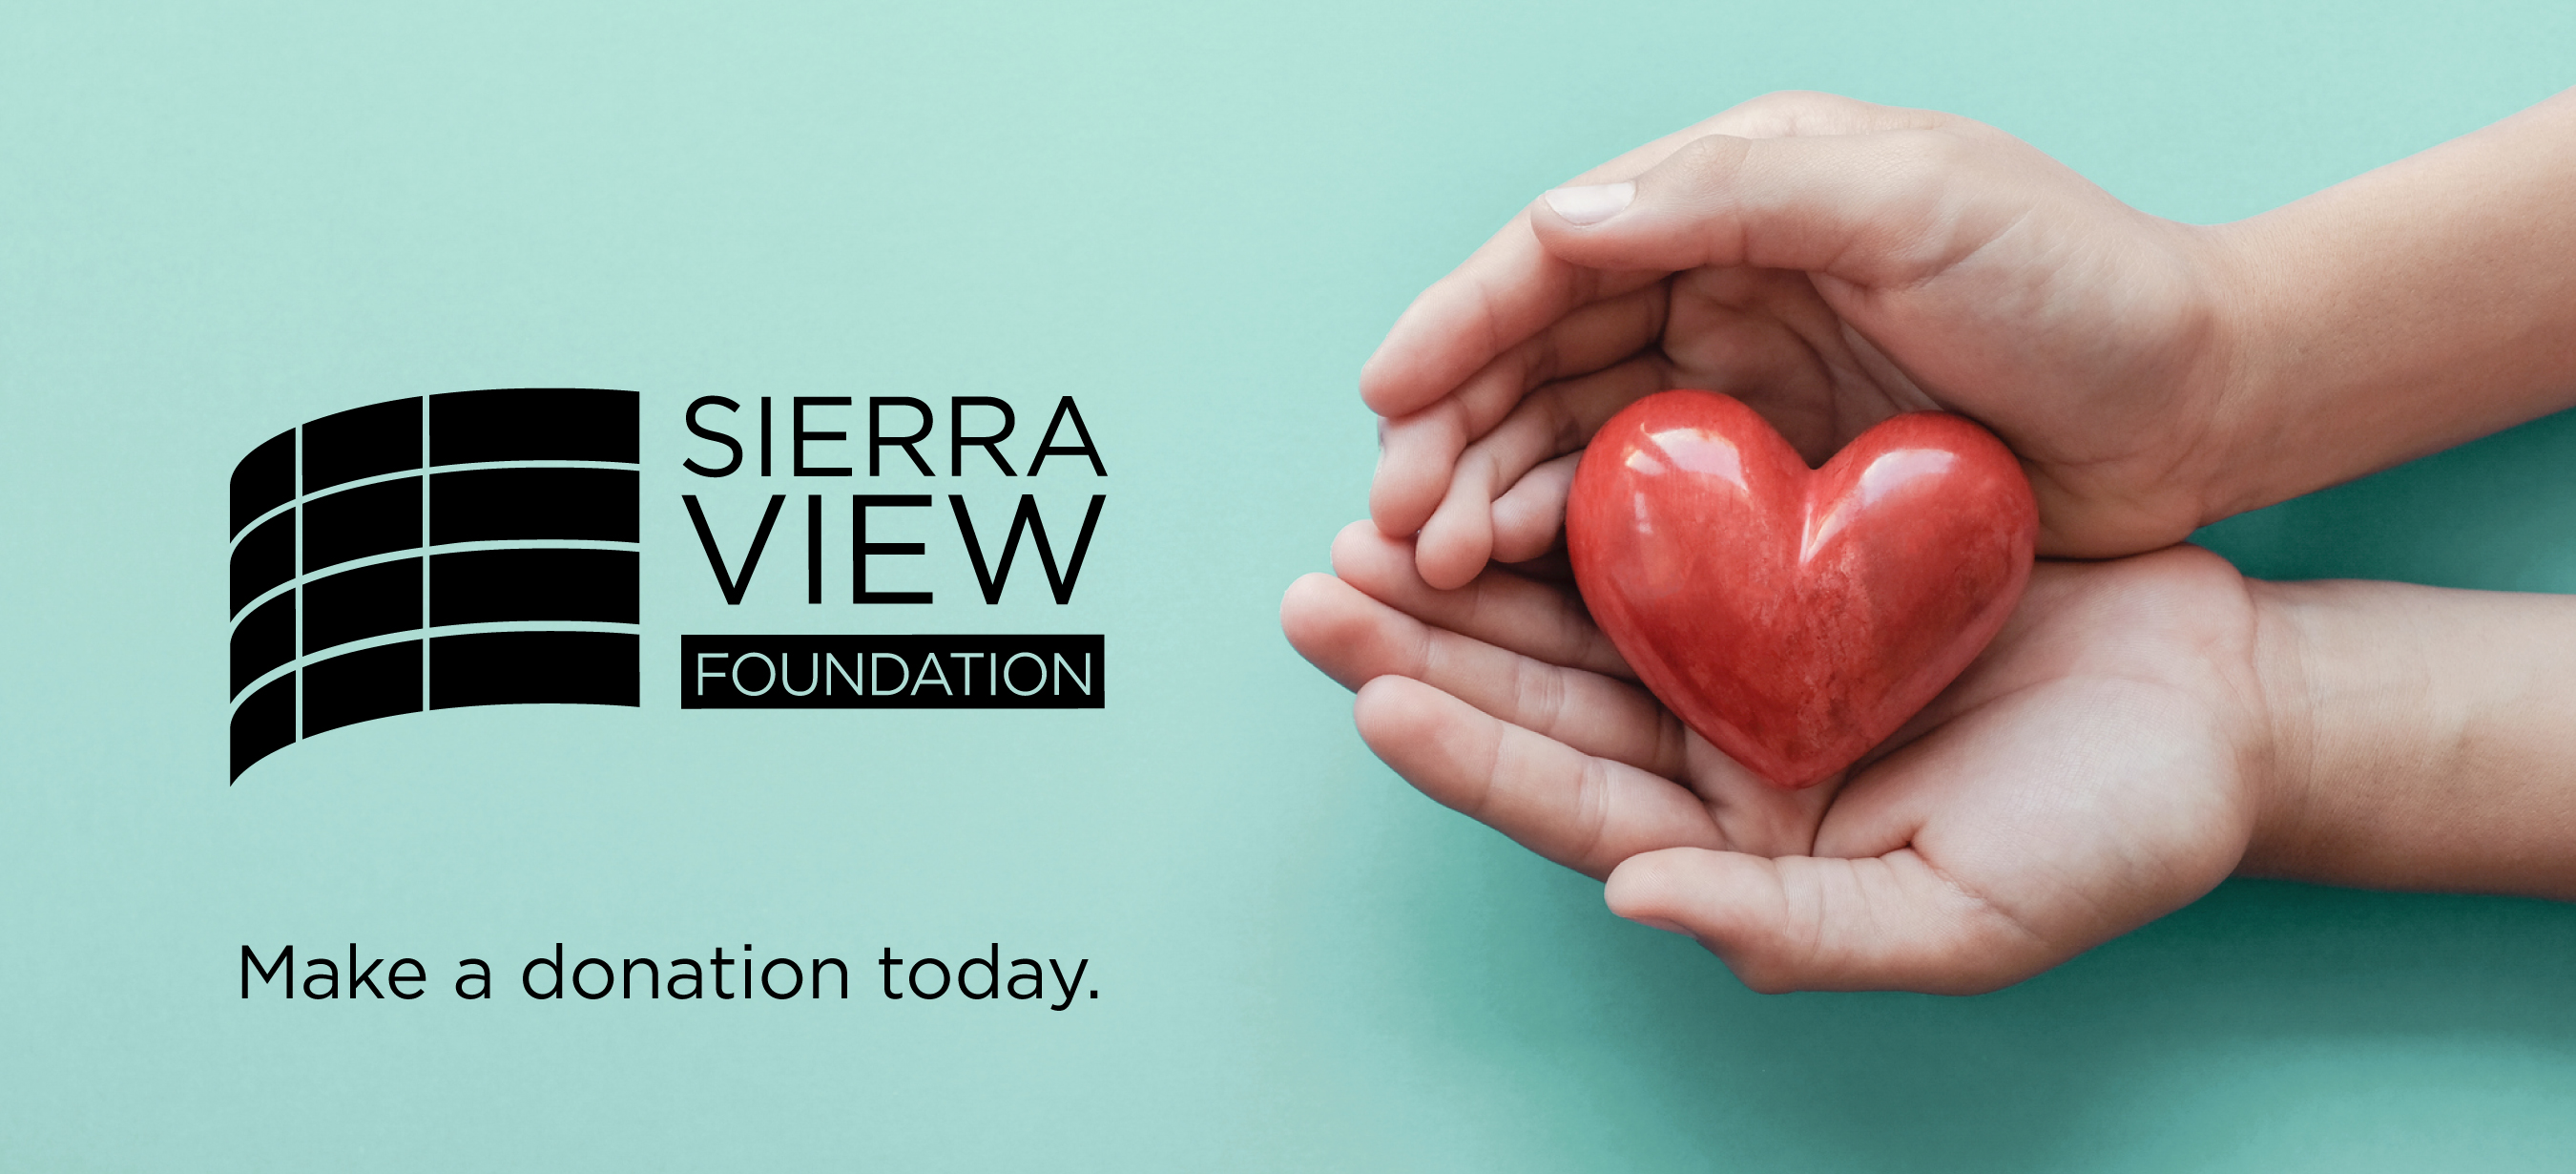 "Image of hands holding heart, Sierra View Foundation logo, and the statement, ""Make a donation today."""